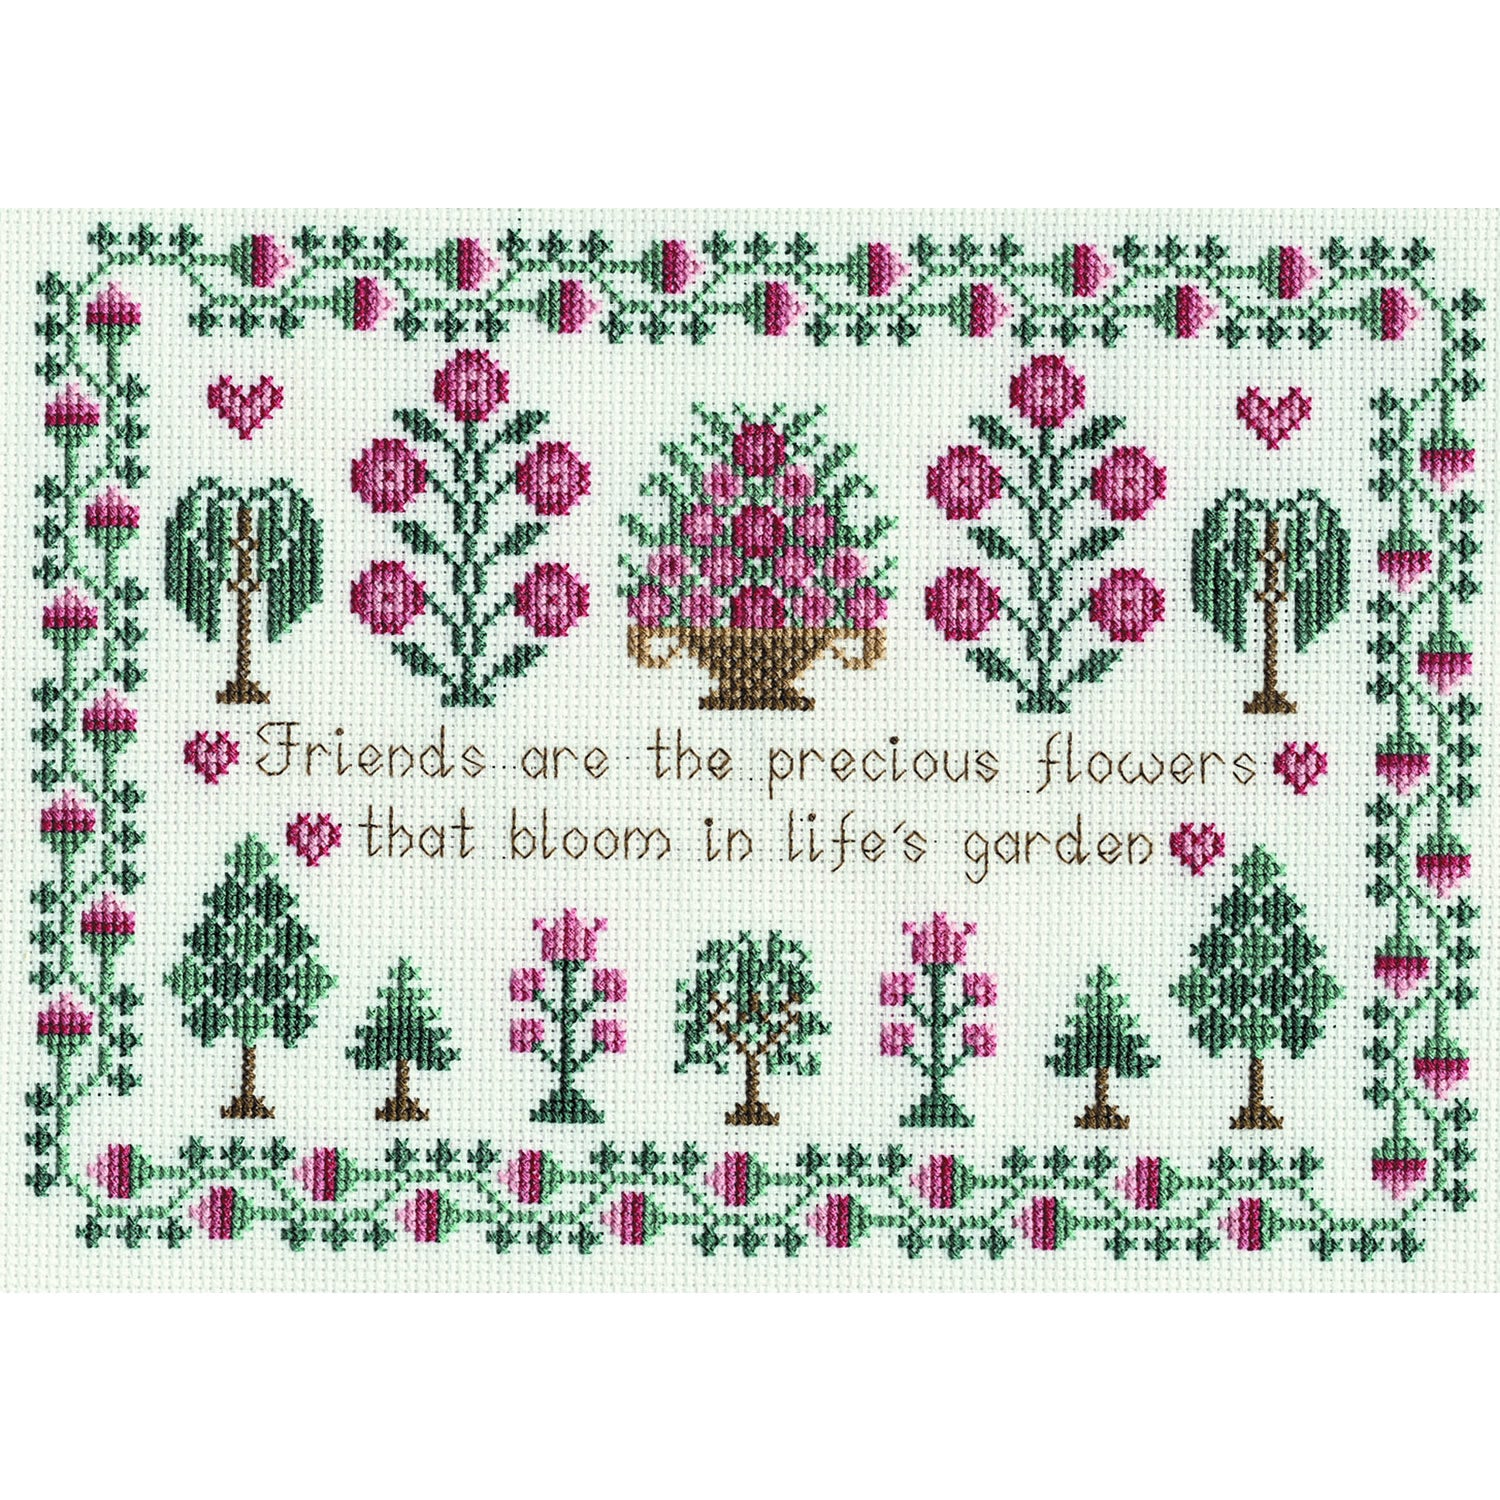 Sampler - Friends<br />Counted Cross Stitch Kit